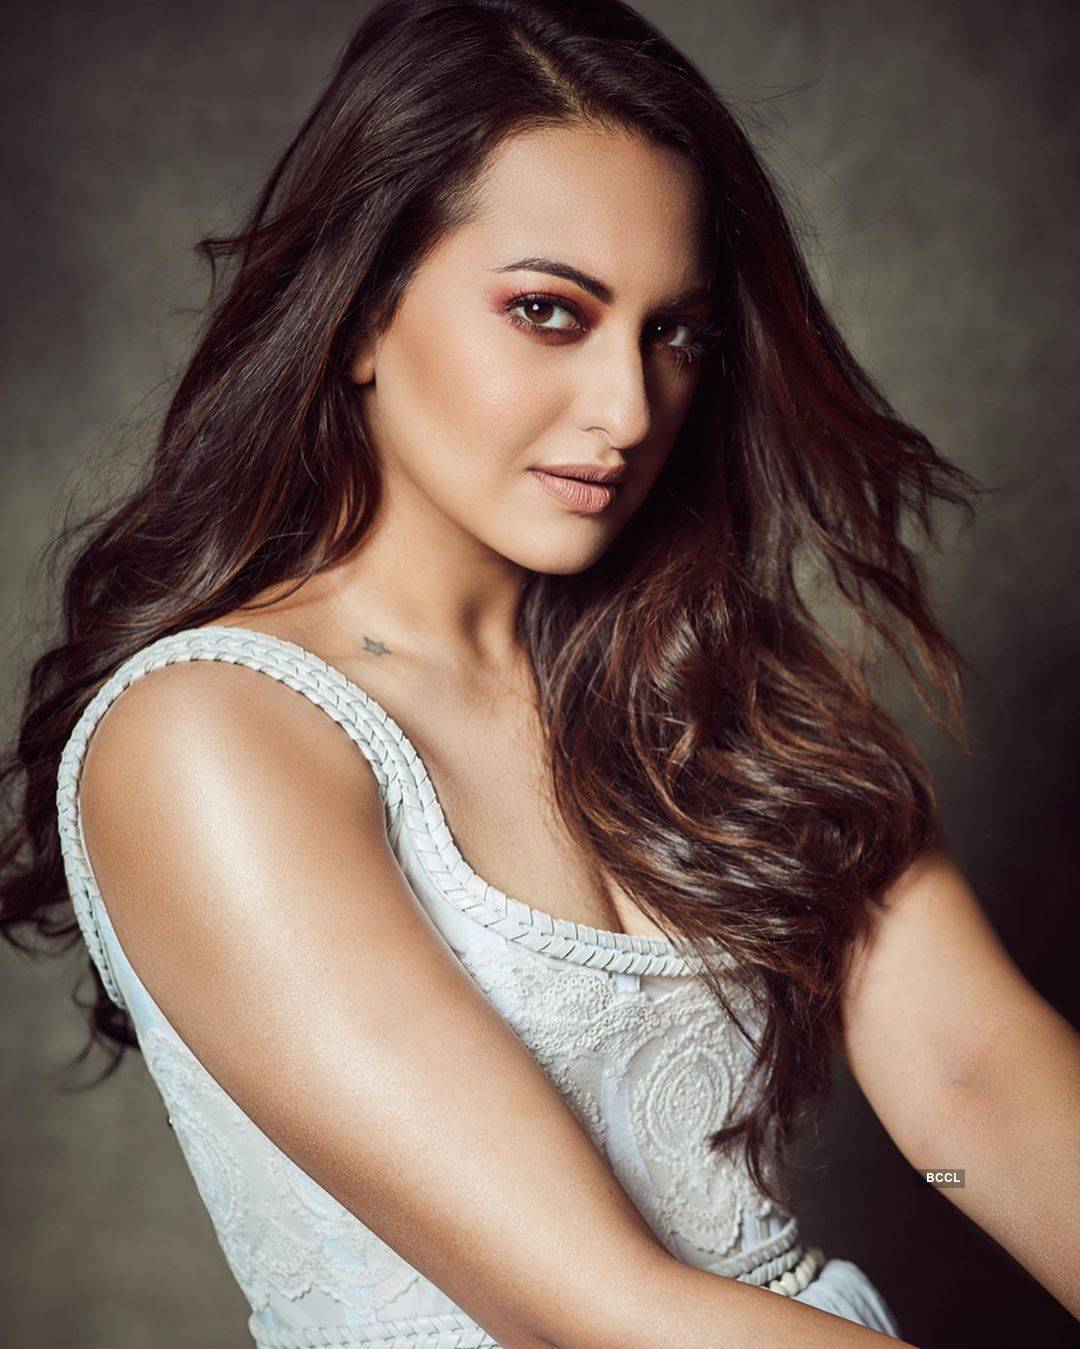 Sonakshi Sinha shuts down trolls who called her a 'buffalo'